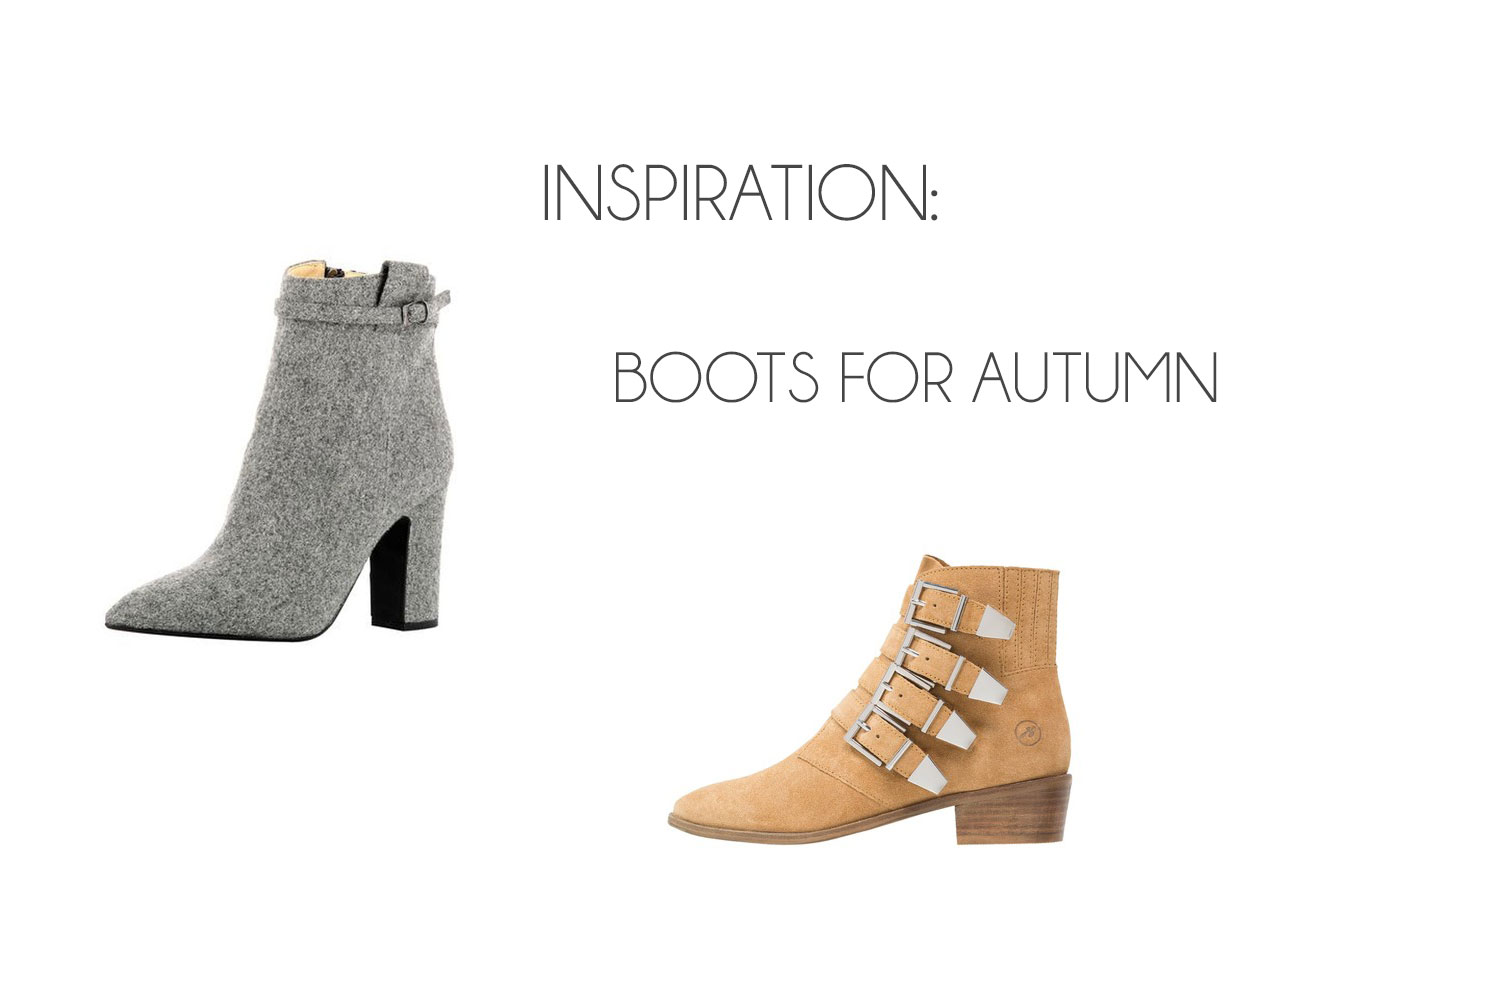 Inspiration: Boots for Autumn ♥ - Inspiration